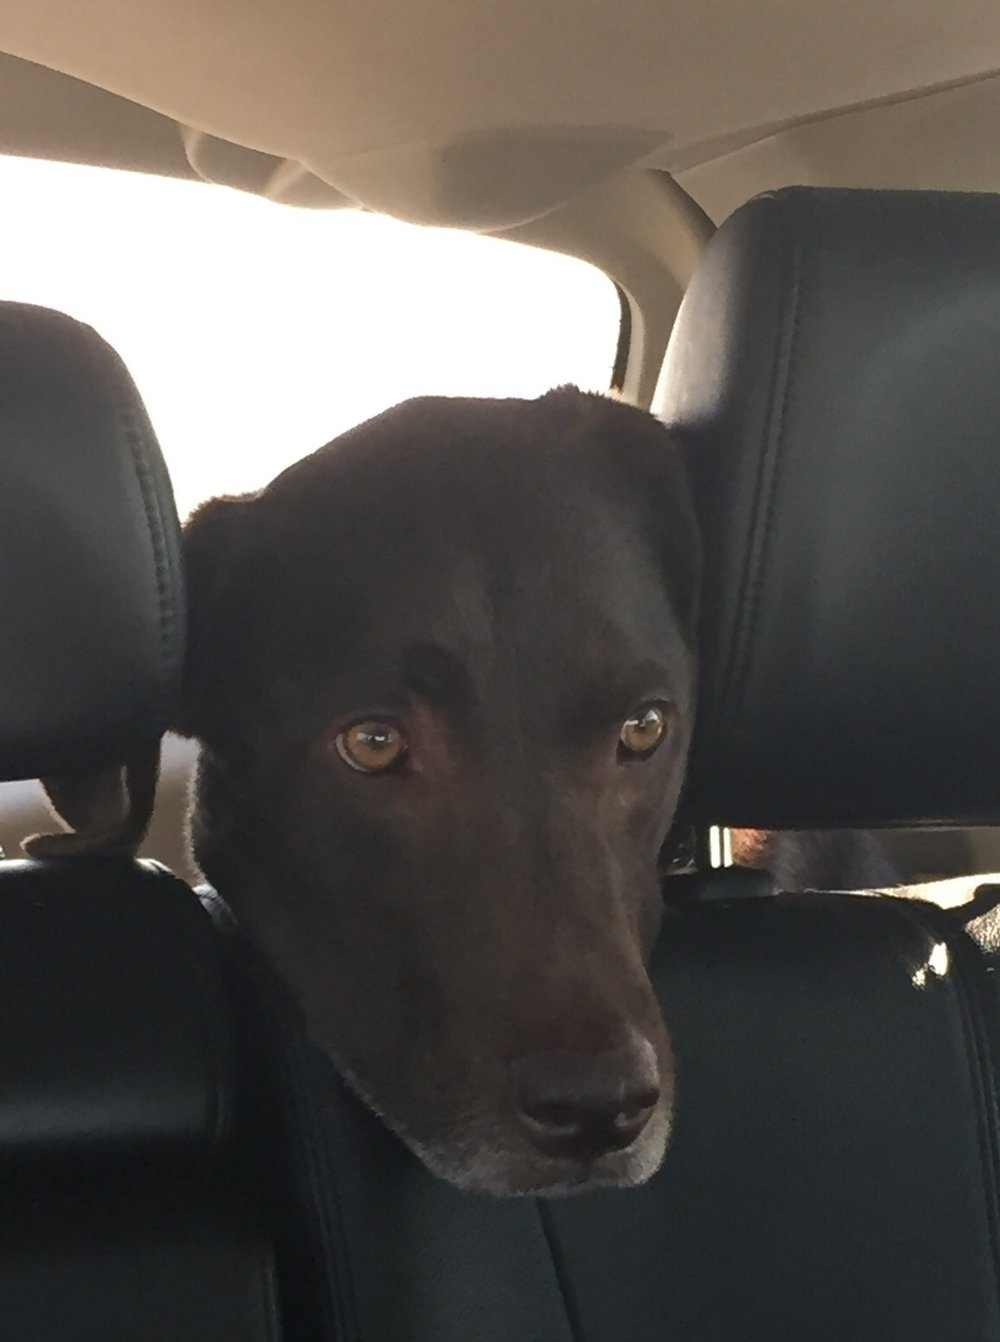 Thor in the car